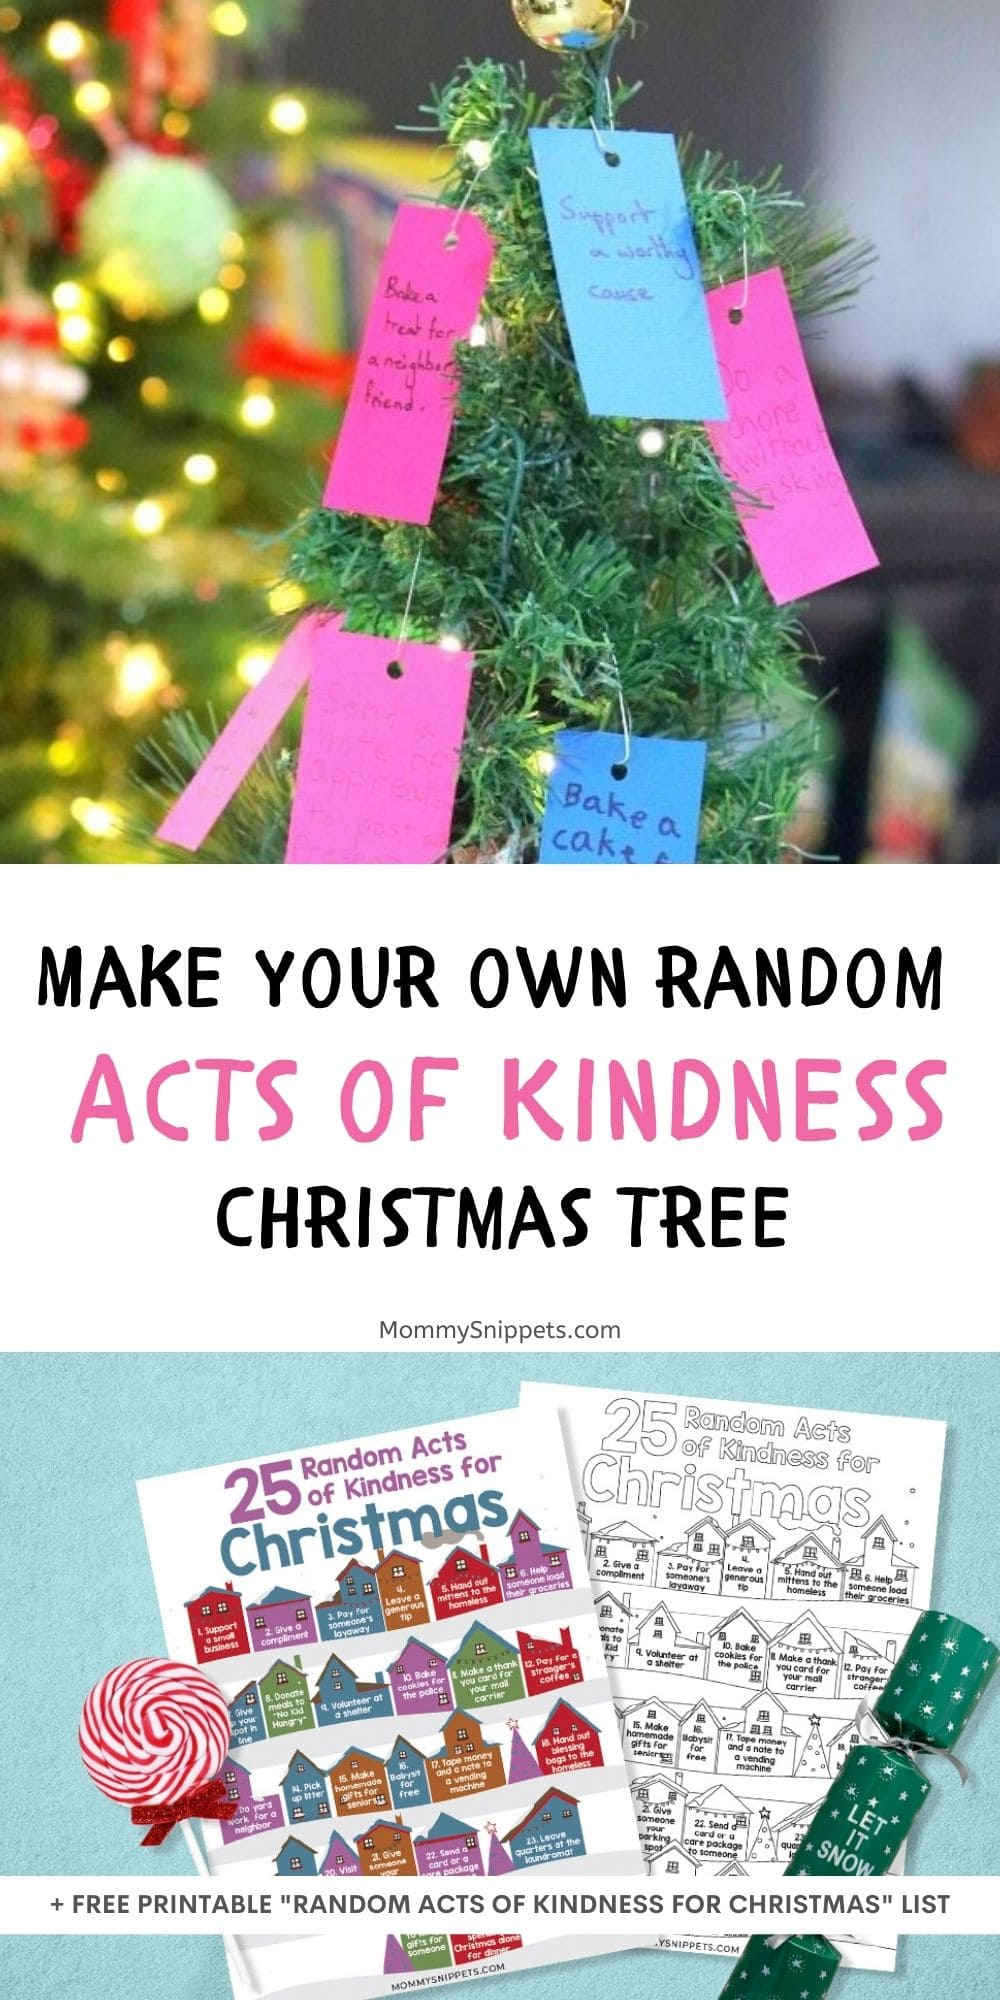 Our Random Acts of Kindness Christmas Tree (+ Random Acts of Kindness for Christmas Printable)